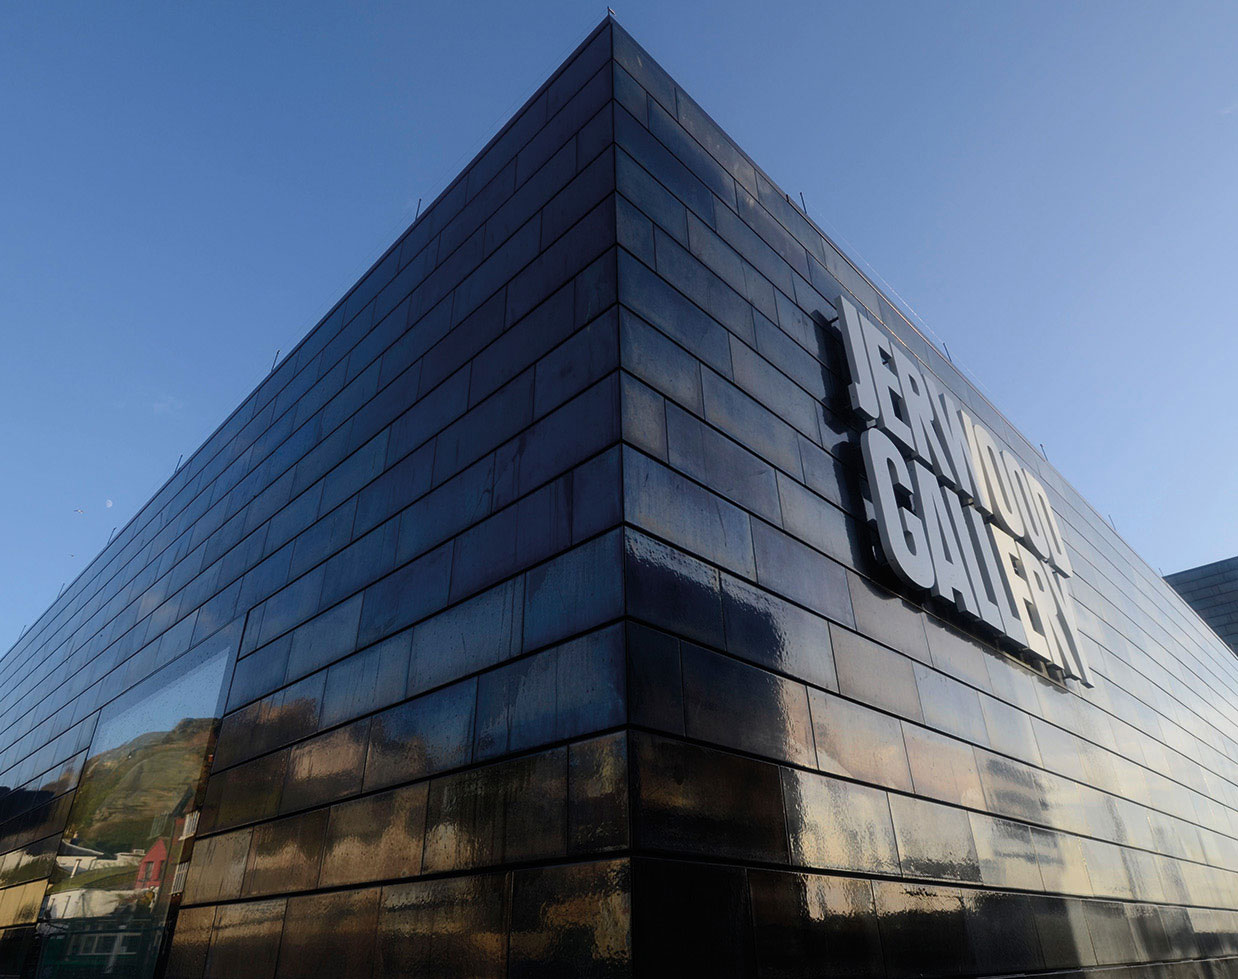 Jerwood Gallery © 1066 Country Tourism